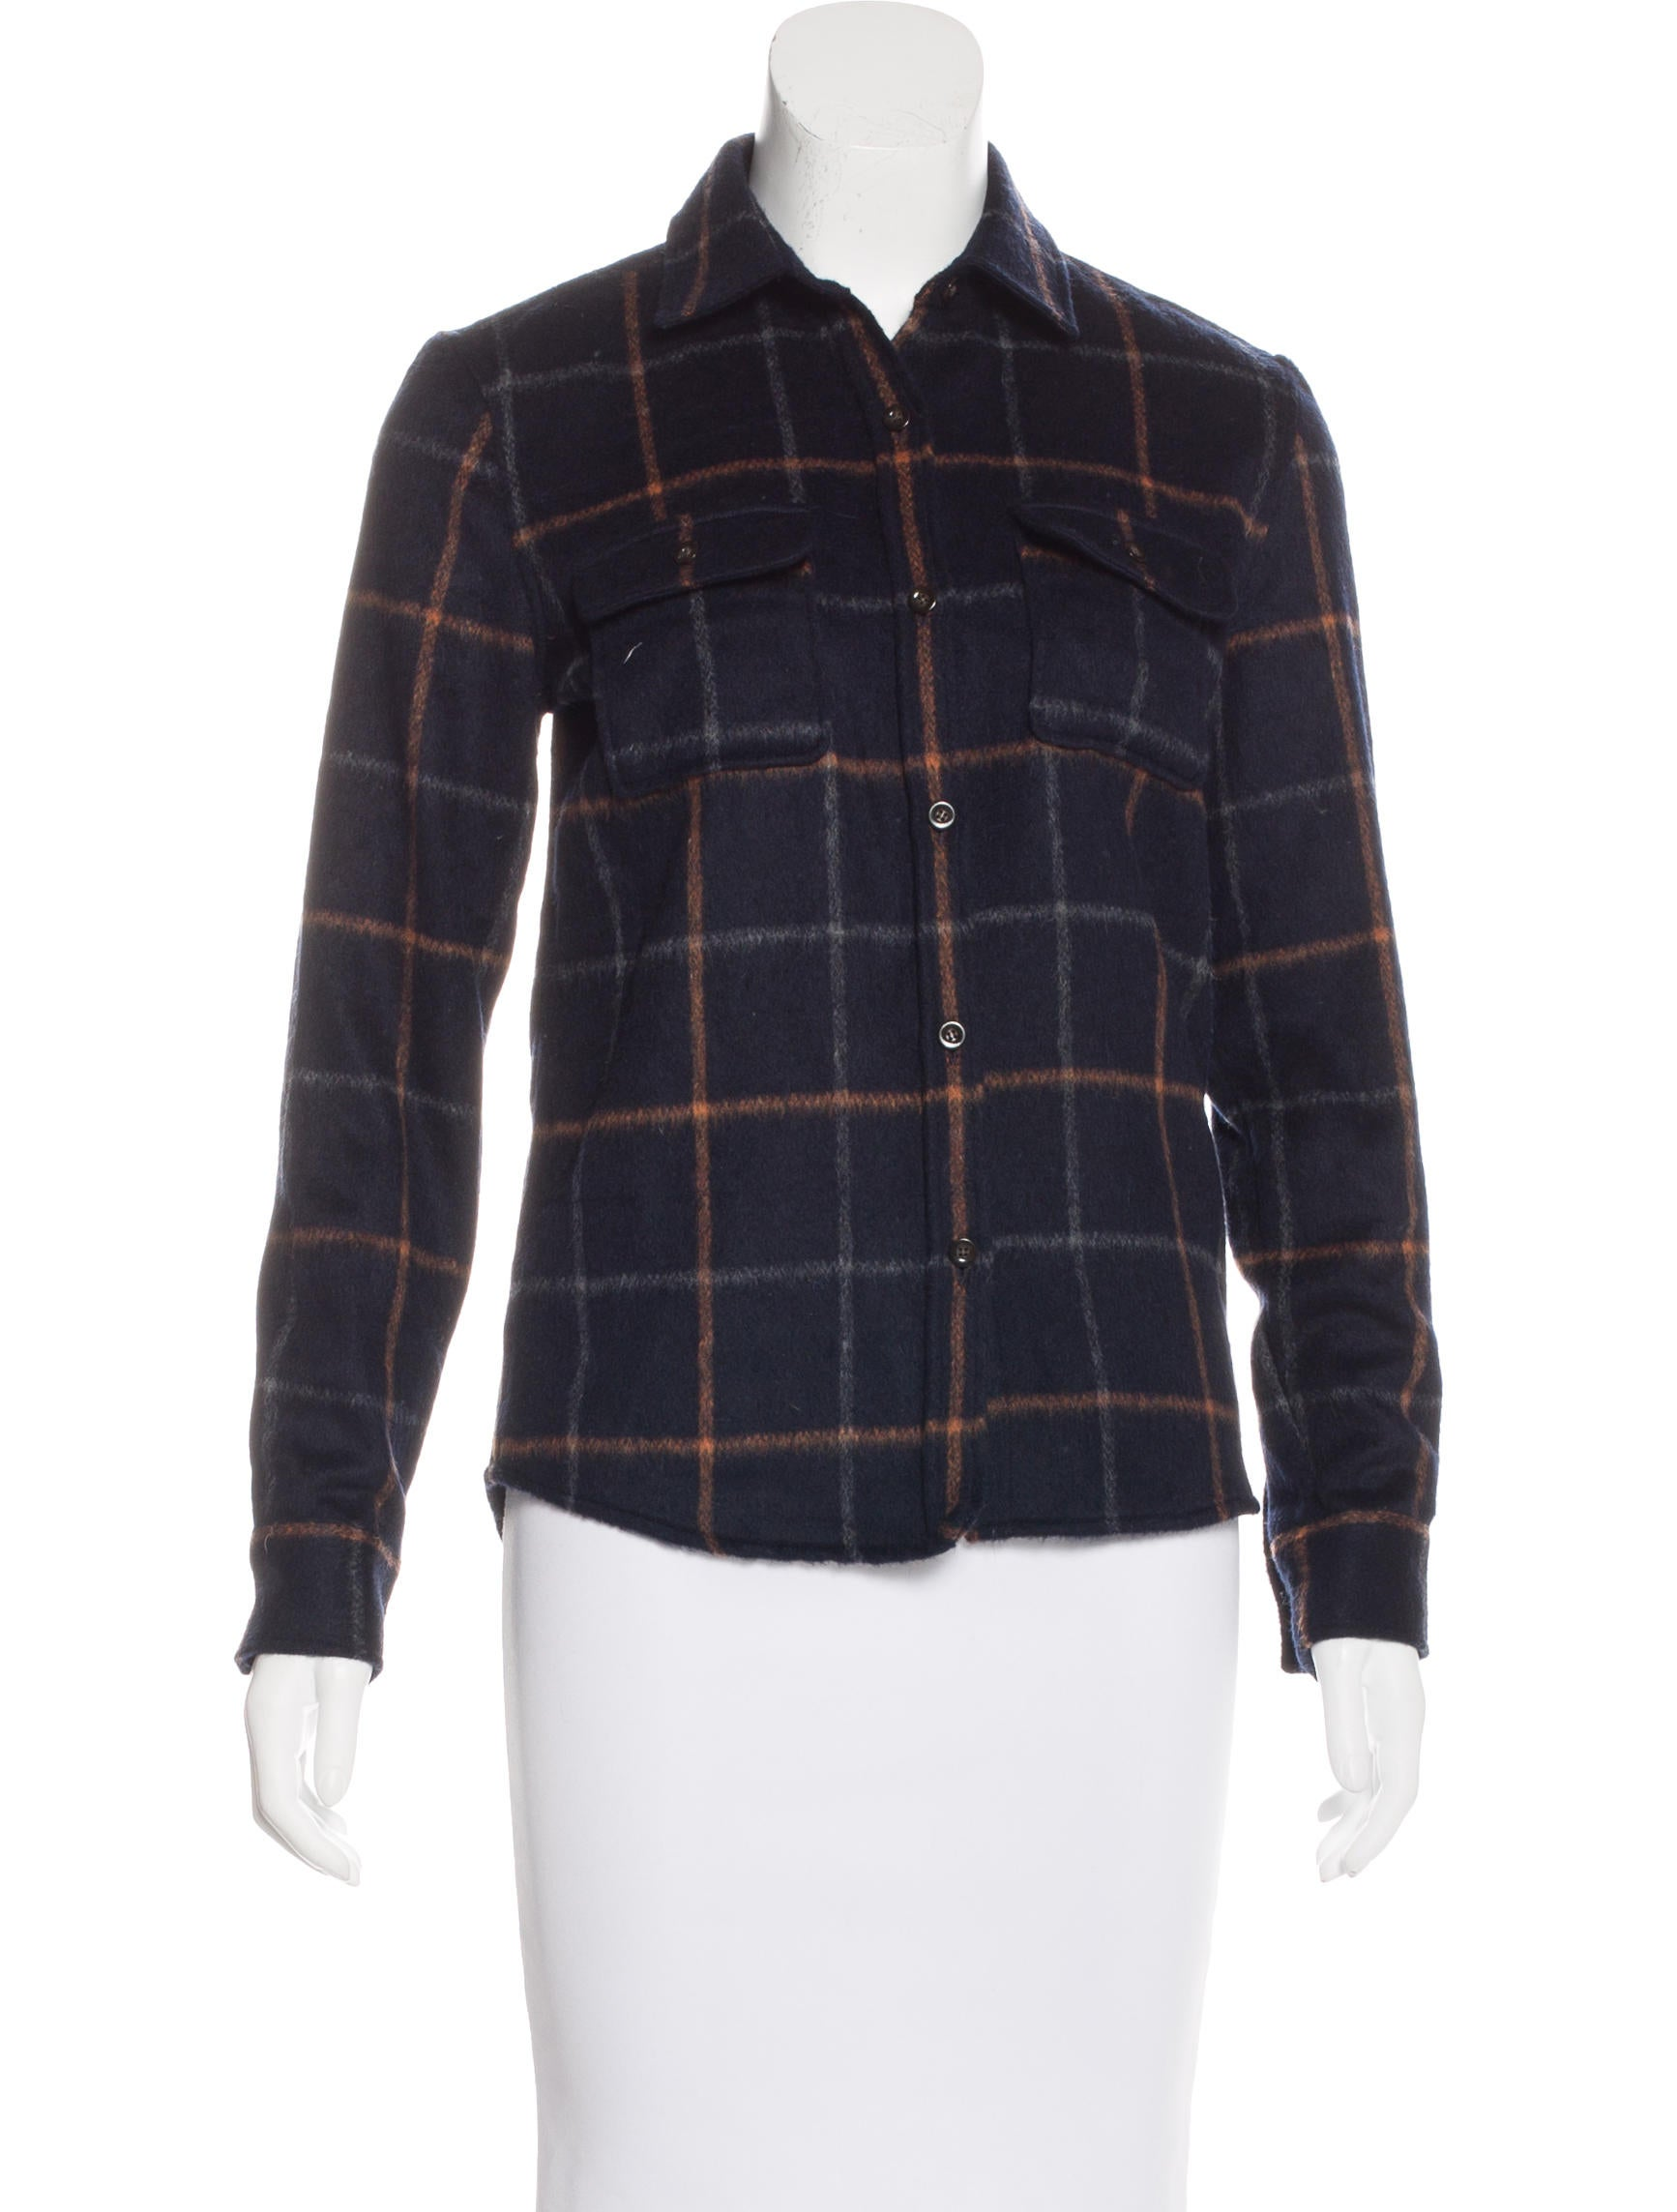 A p c wool blend long sleeve top clothing wa325069 for Best wool shirt jackets